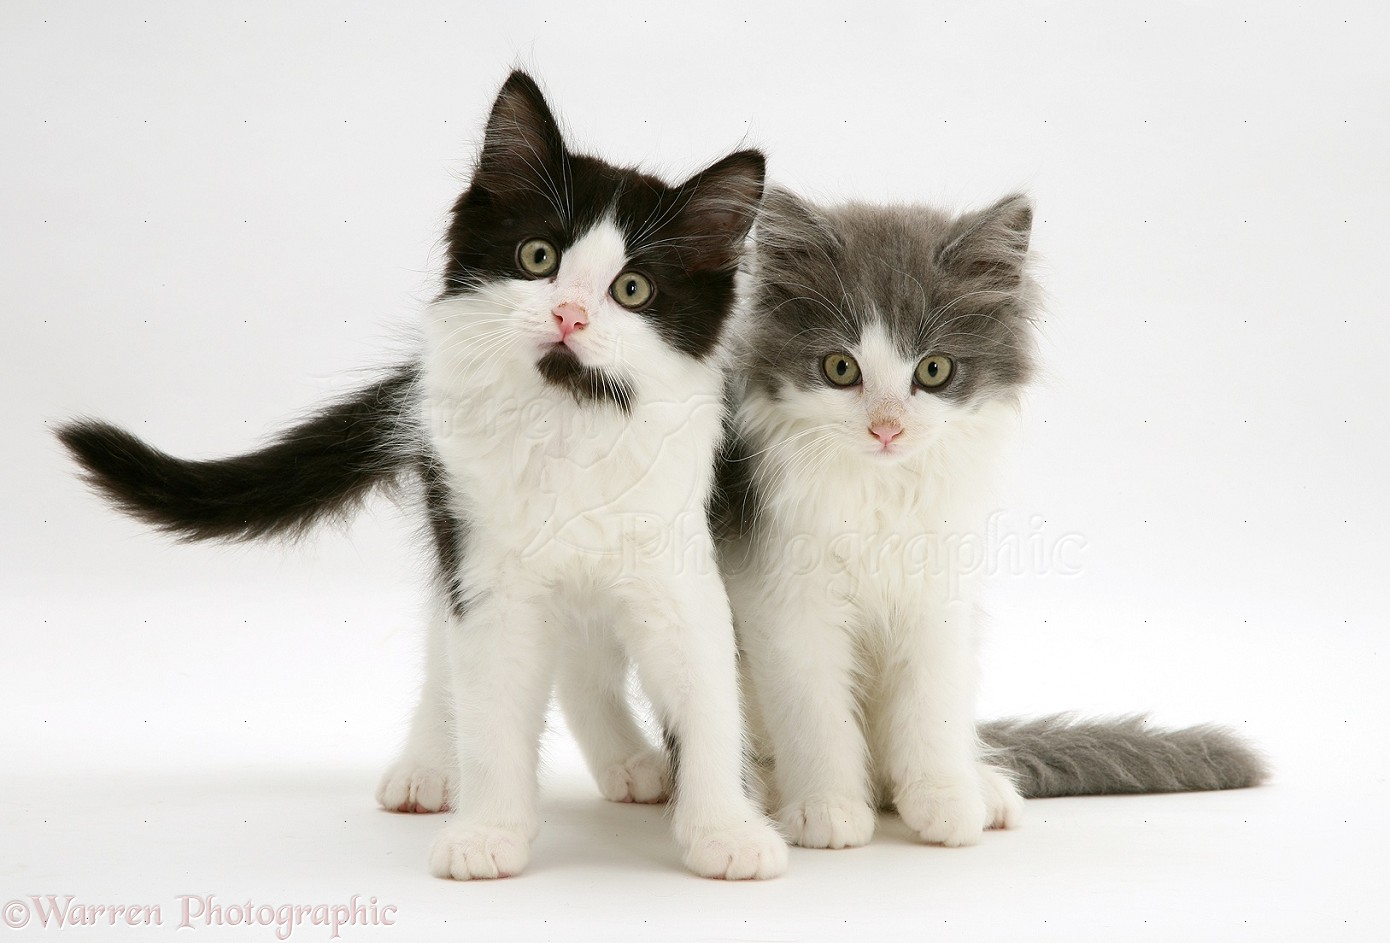 Black and white and grey and white Persian cross kittens photo